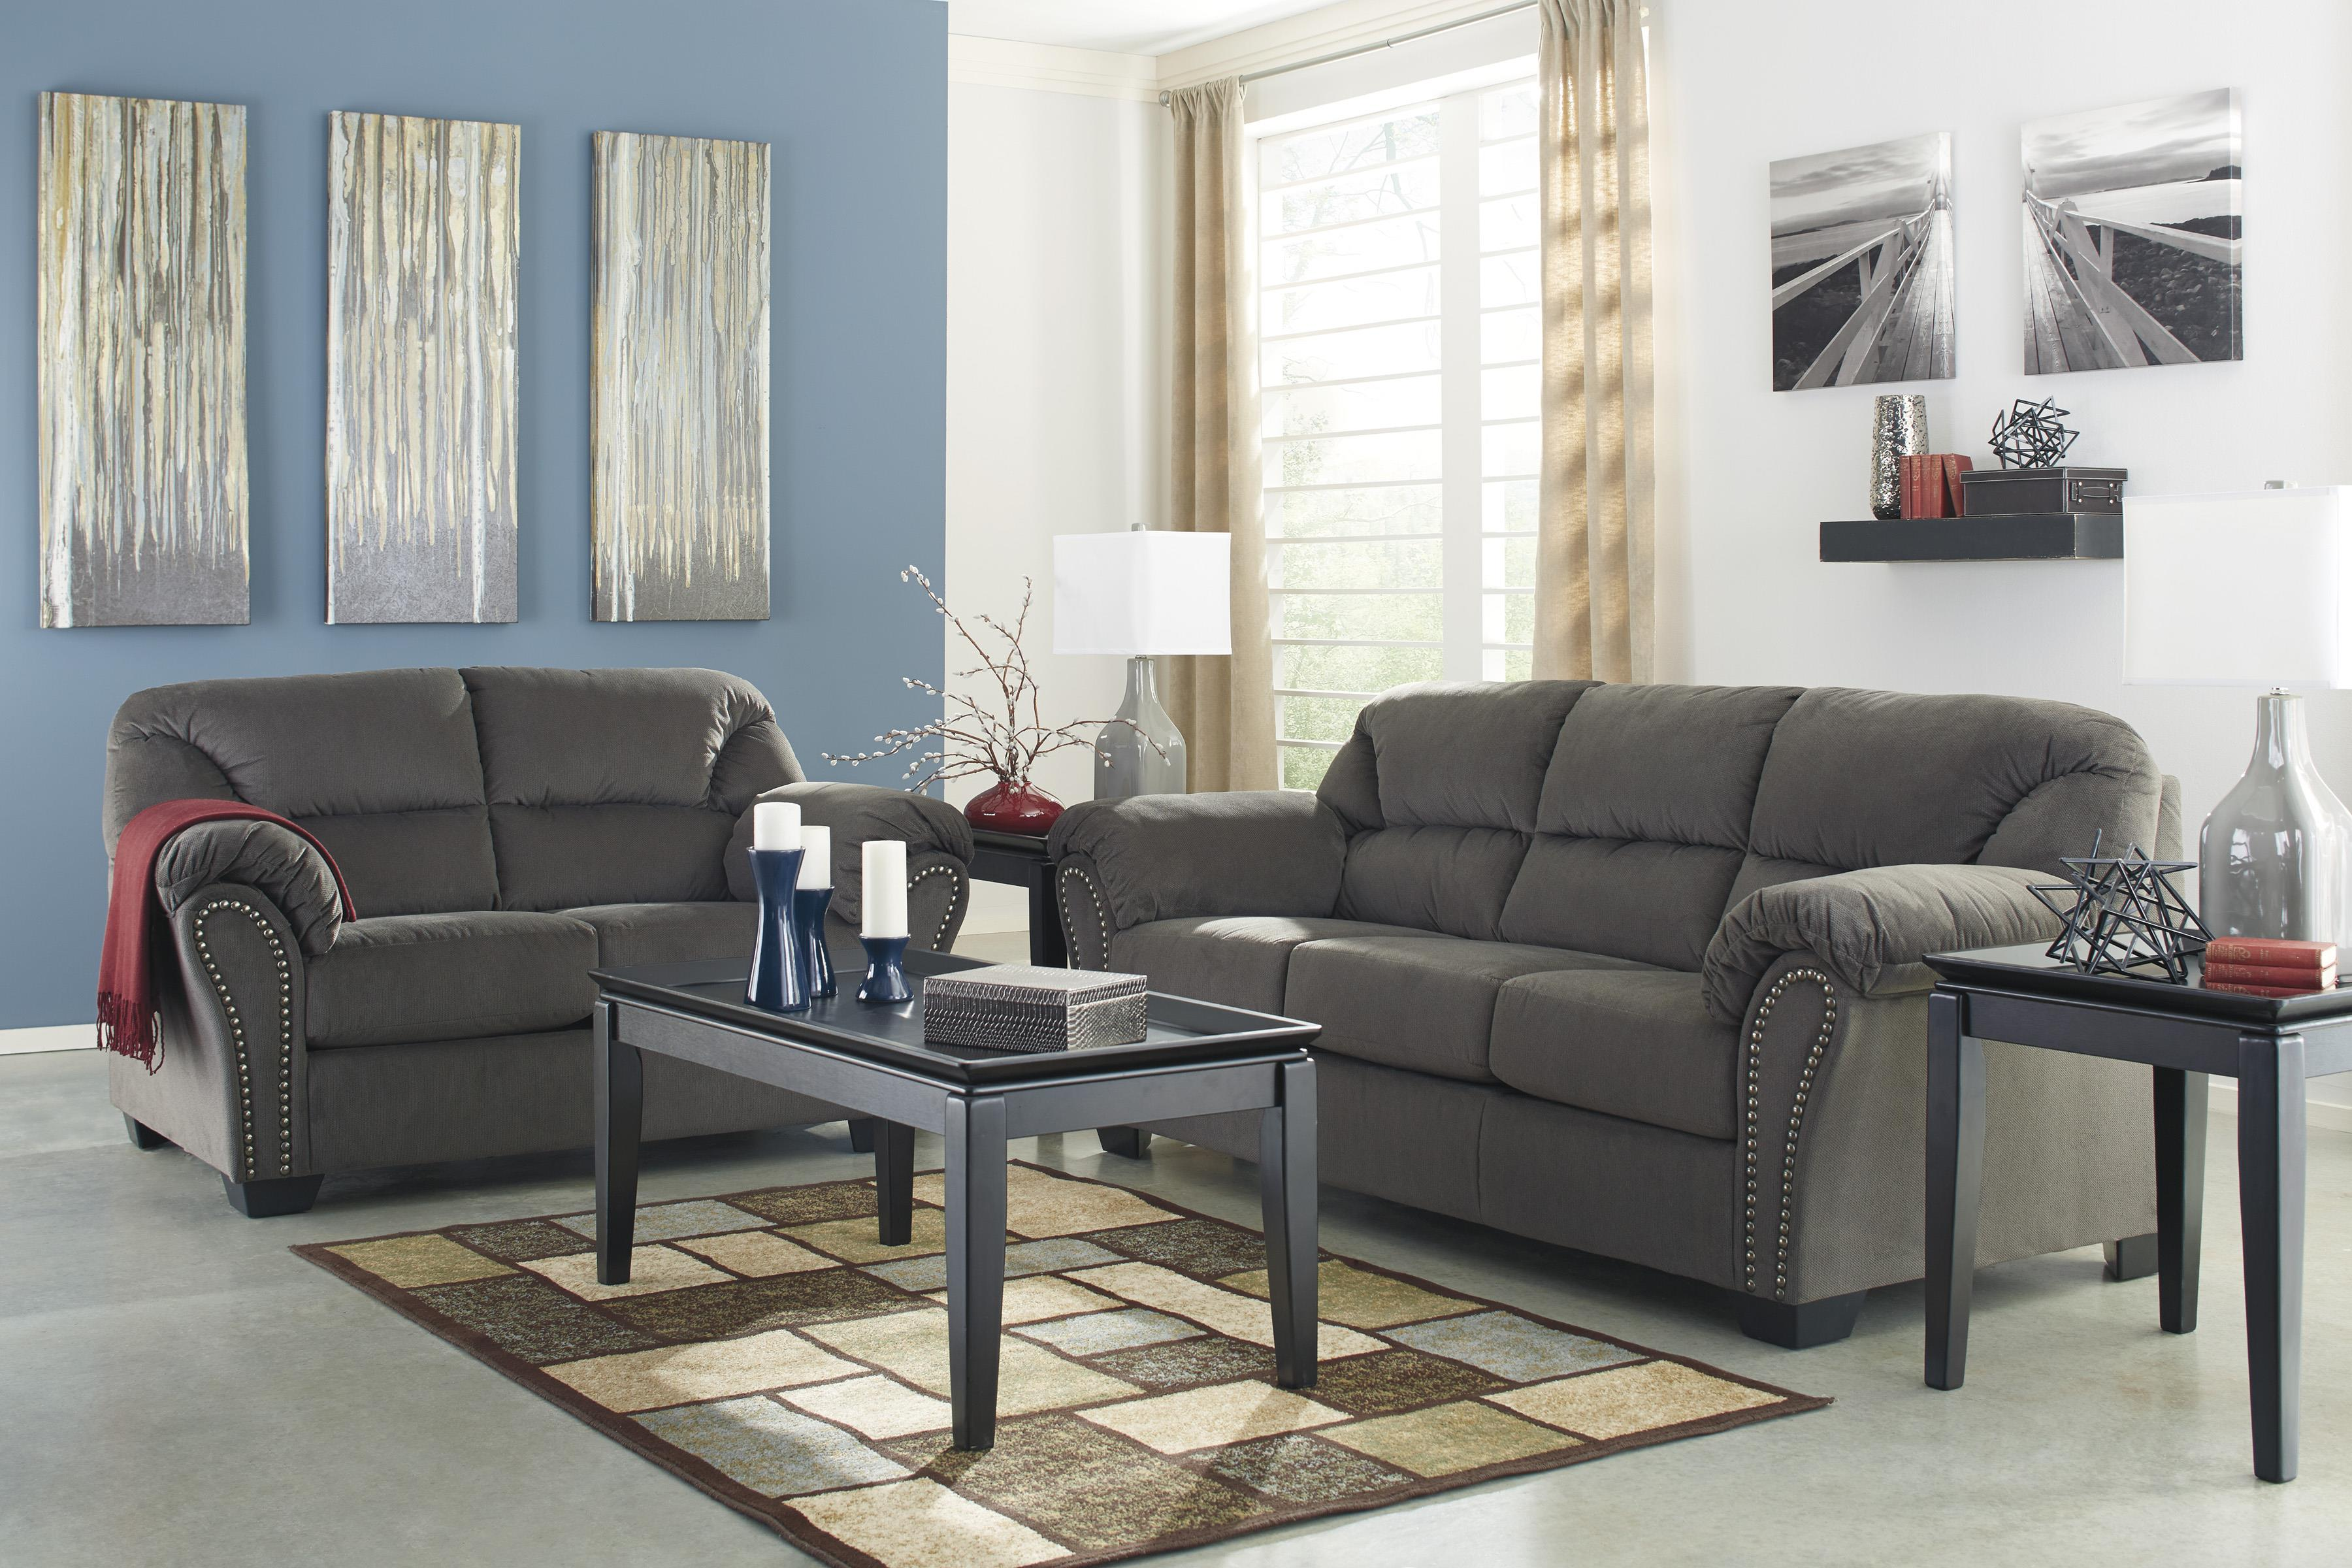 Sofa with Nailhead Trim and Pillow Arms by Signature